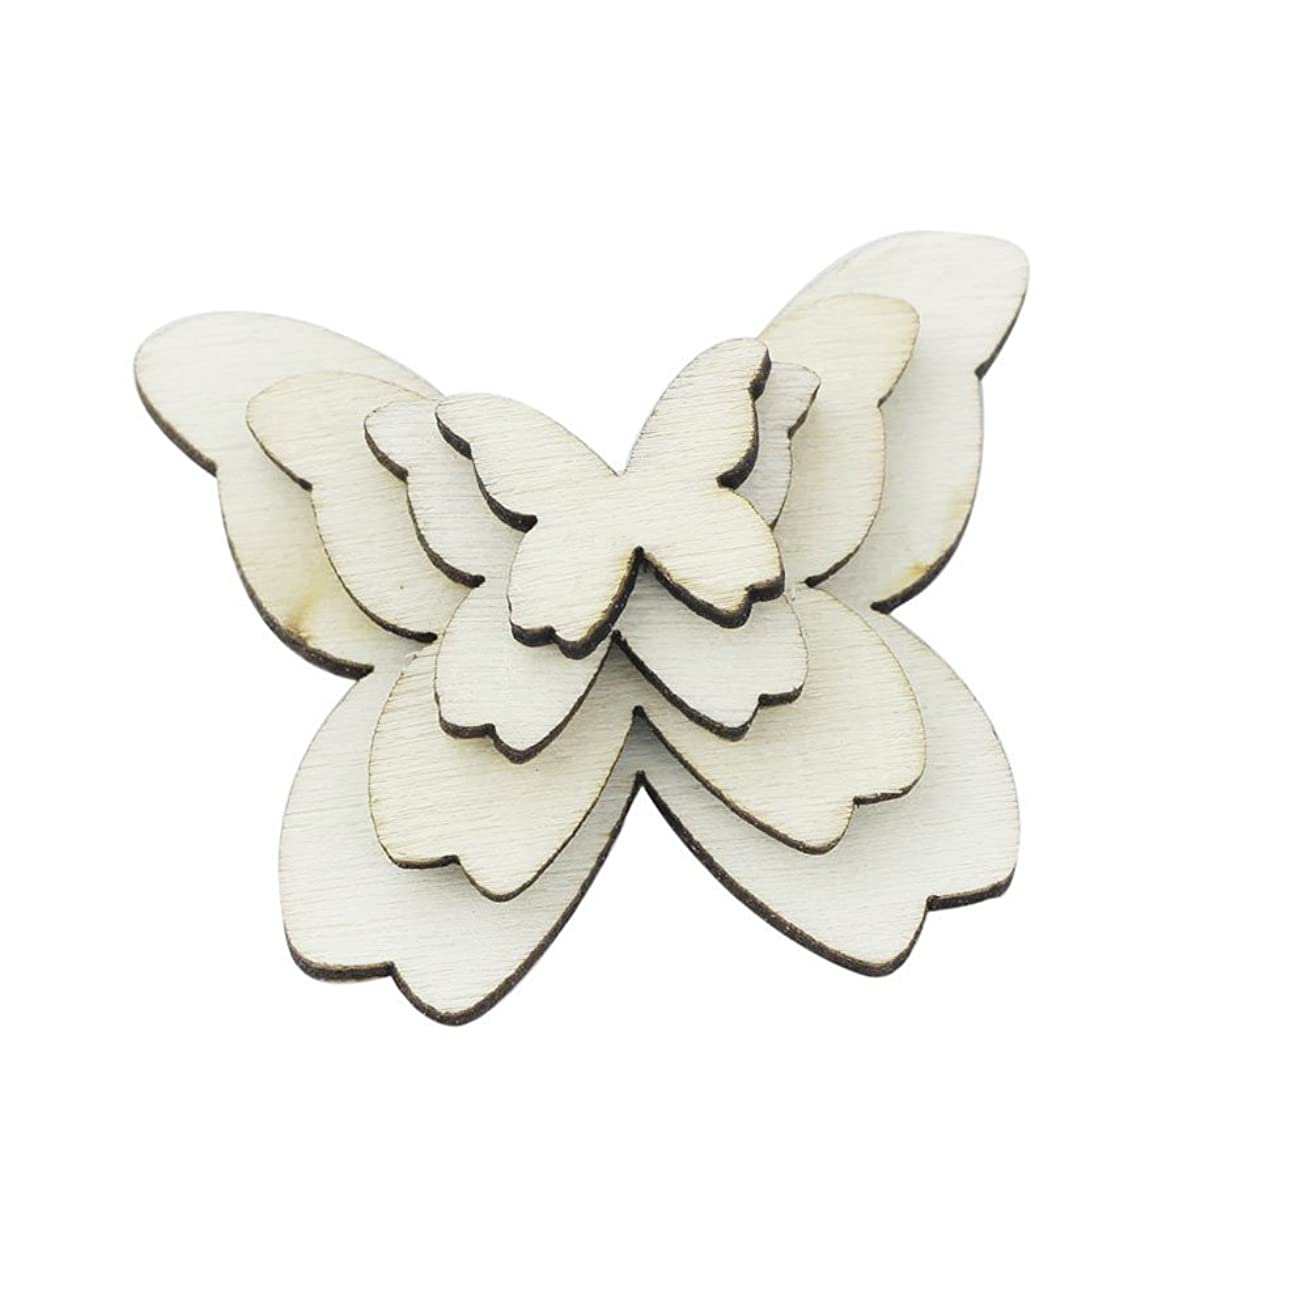 WINGONEER 100pcs Mixed Size Wooden Butterfly Cutouts Craft Embellishment Gift Tag Wood Ornament for DIY